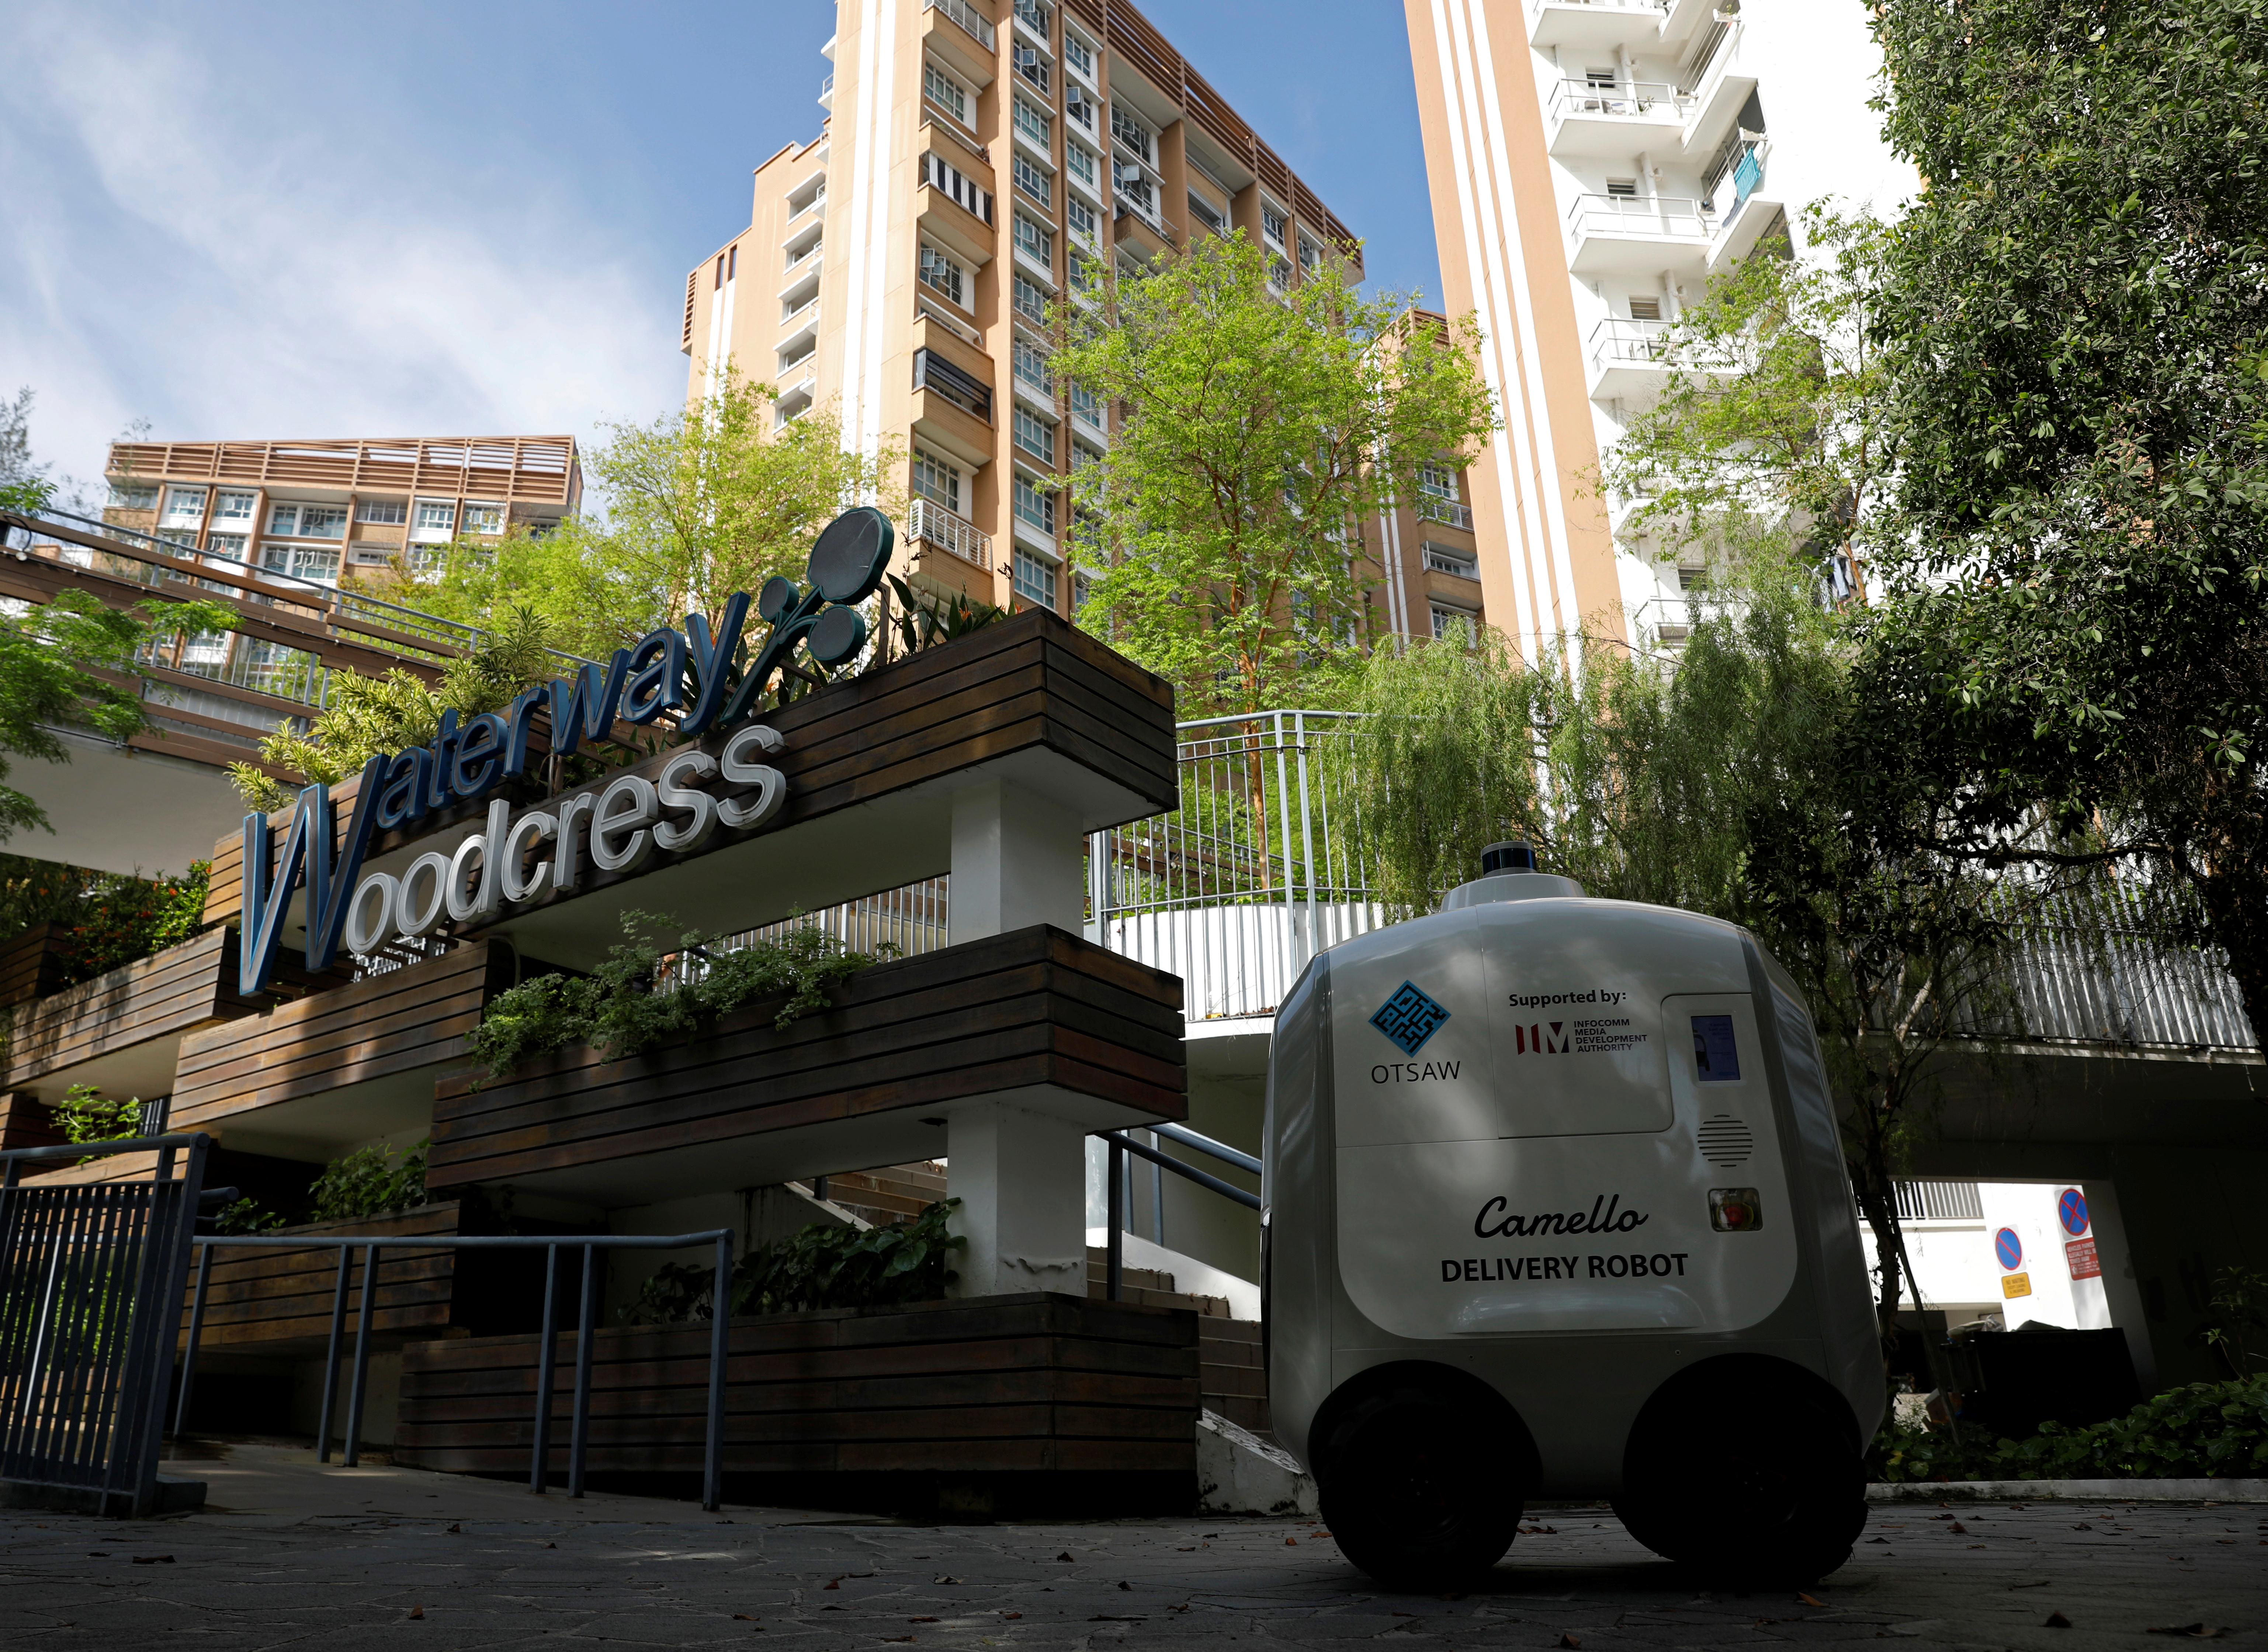 Camello, an autonomous grocery delivery robot, makes its way during a delivery in Singapore April 6, 2021. REUTERS/Edgar Su